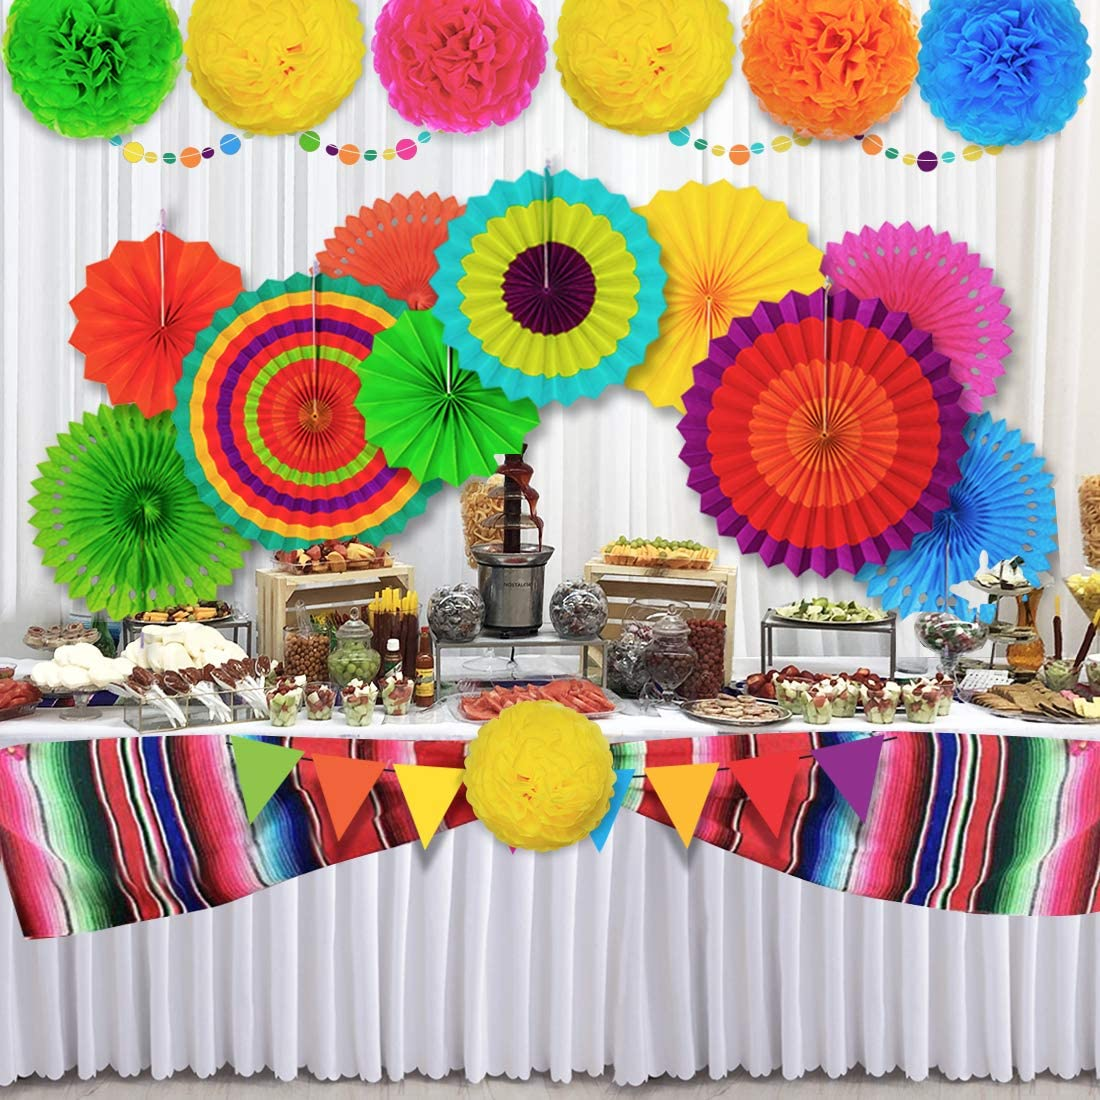 Fiesta Party Decorations Birthday Kit Mexican Decor For Adults Kids Themed  Party Supplies Cinco de Mayo Backdrop Paper Fan Pom Poms Serape Table